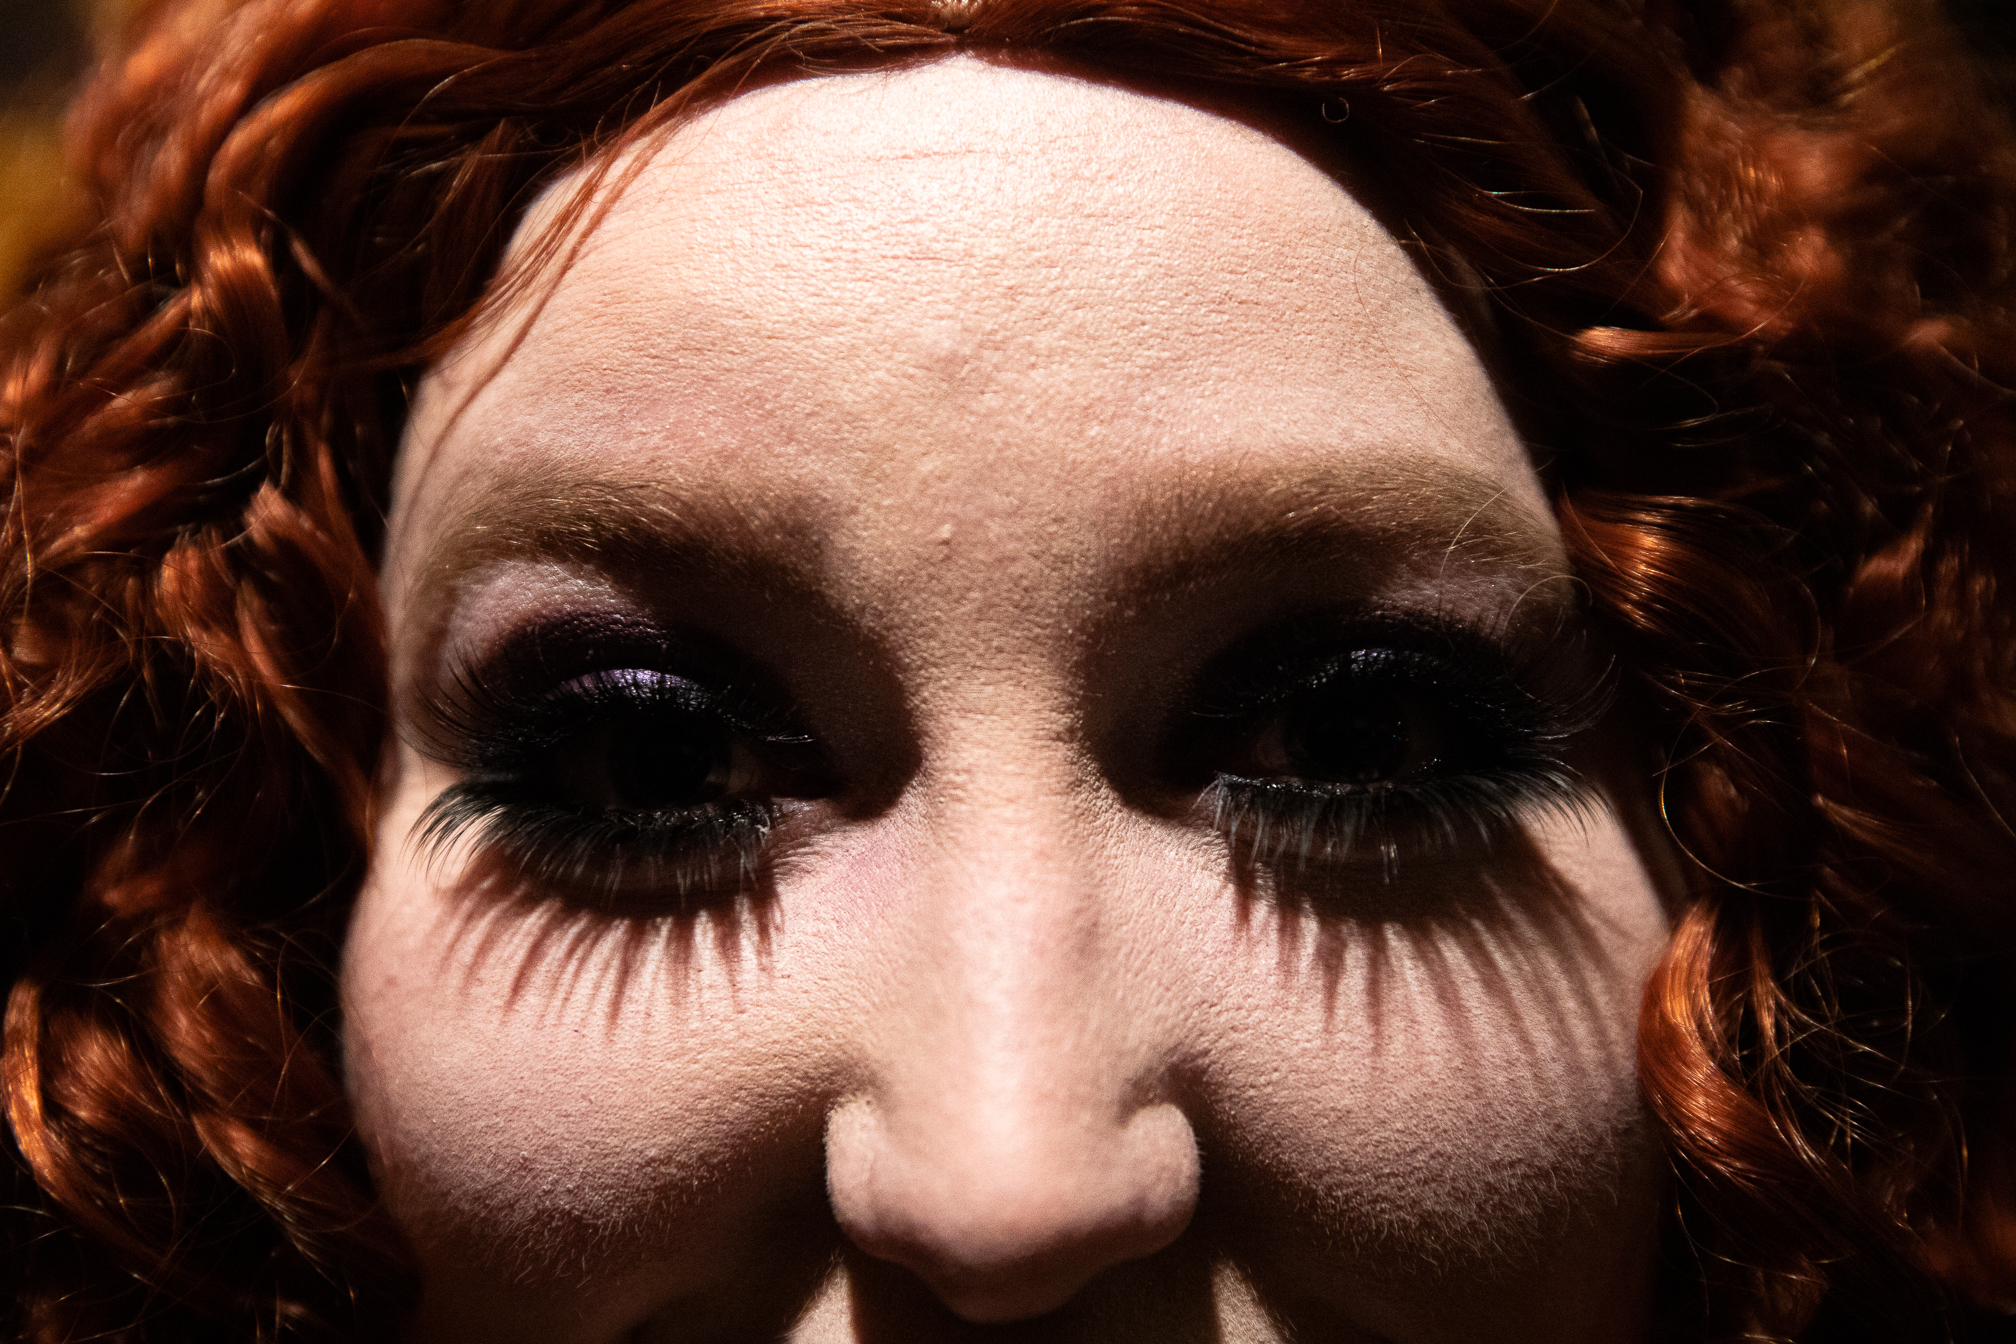 Nina Loschiavo explains that the character of Magenta has the most striking eyelashes in the film. The cast's goal is to be screen-accurate, so she wears fake eyelashes to mimic Magenta's in the movie.